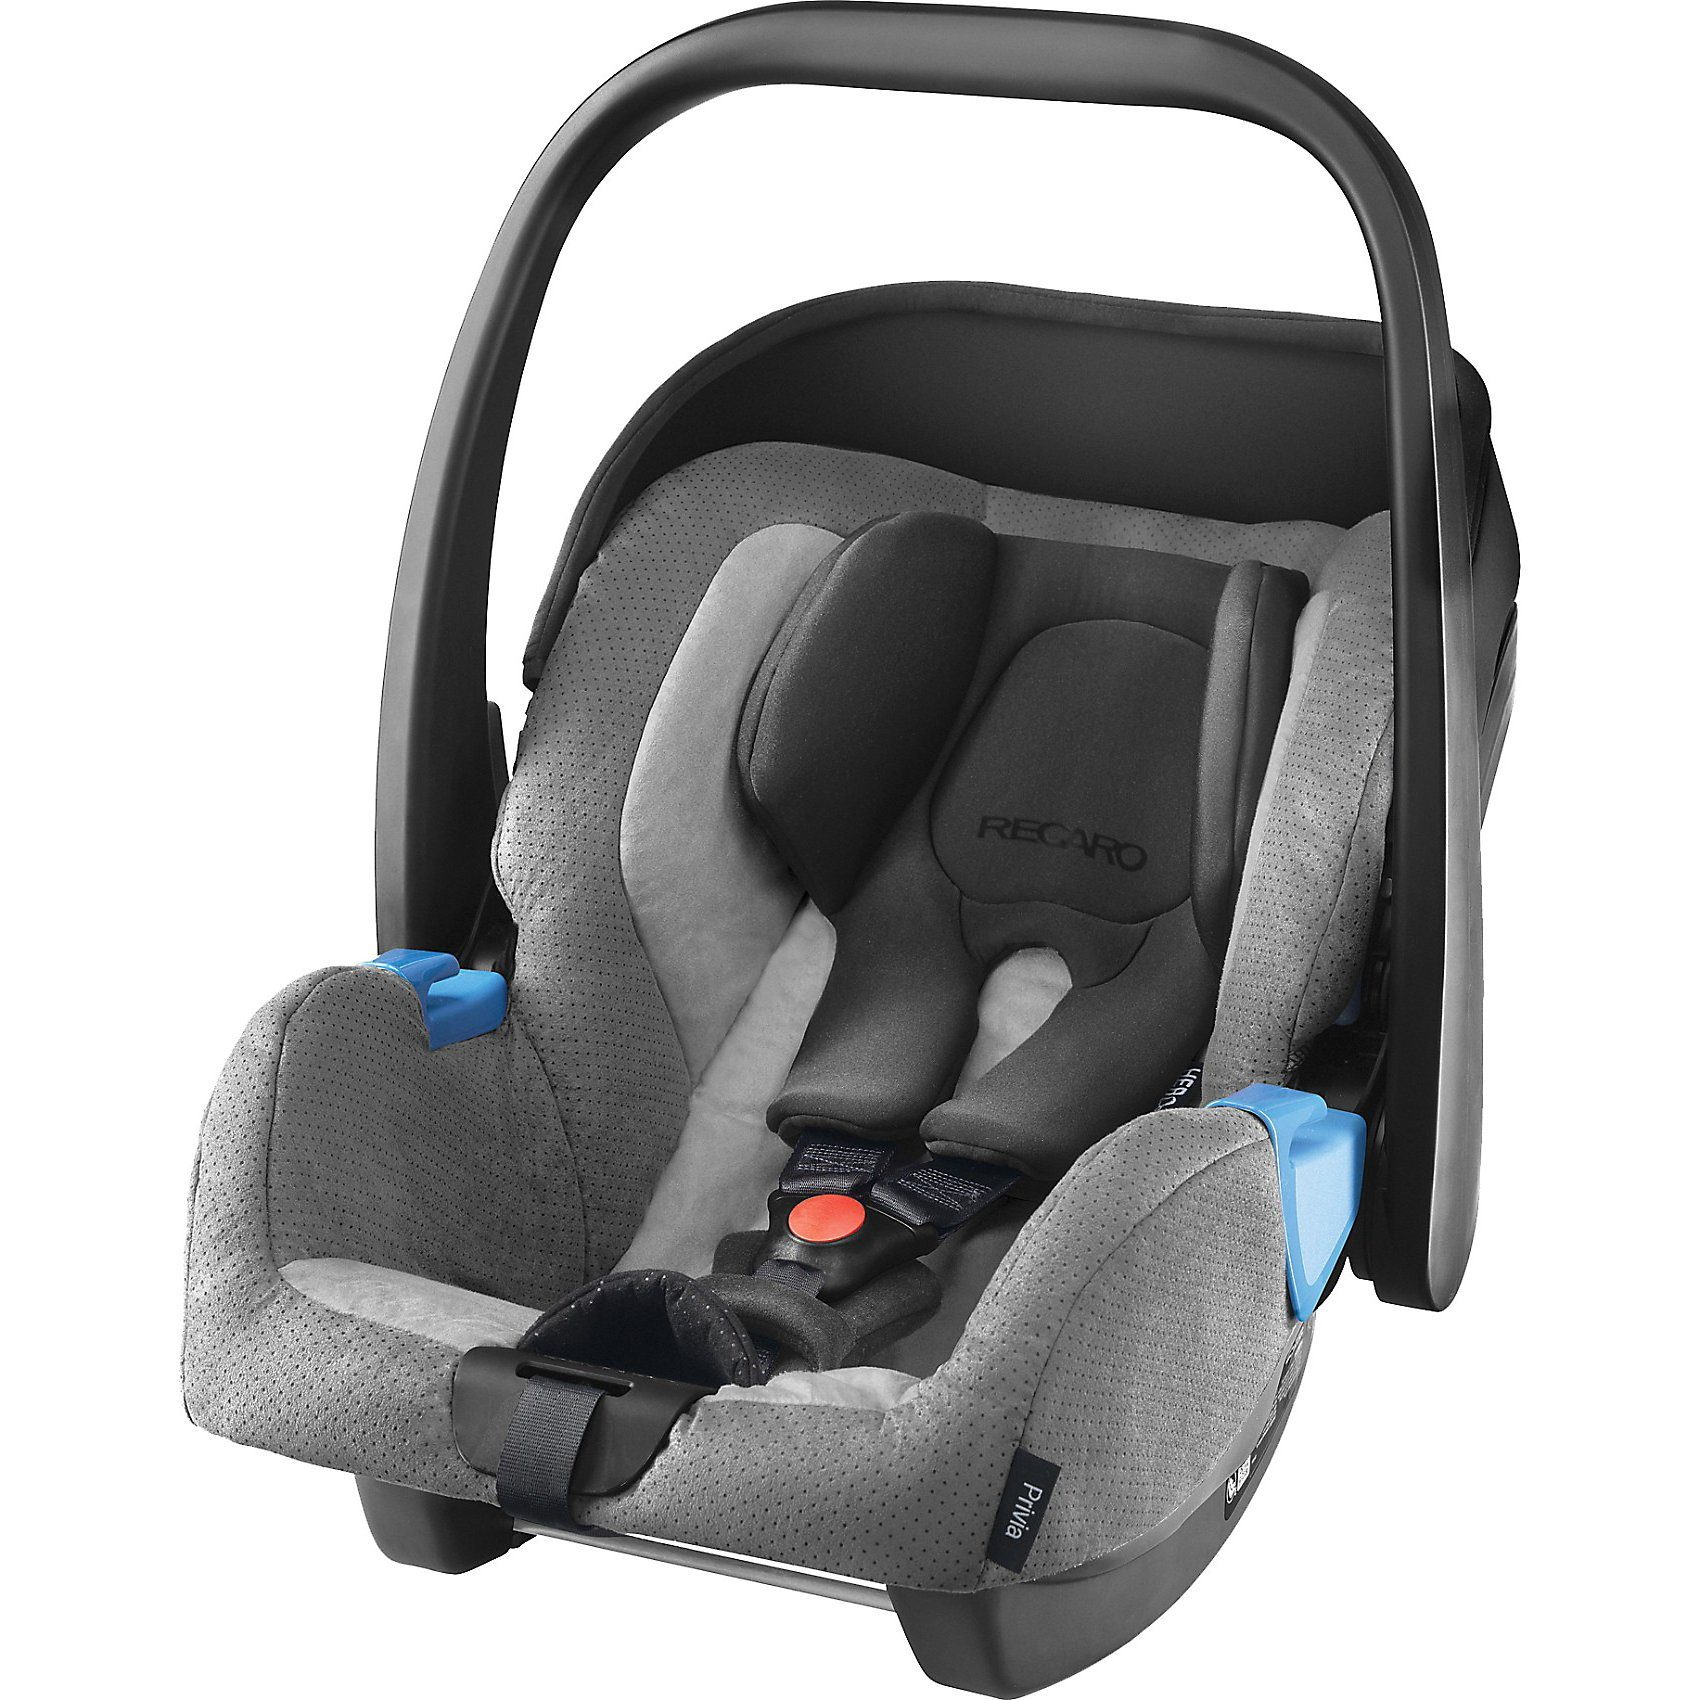 RECARO Babyschale Privia, Shadow